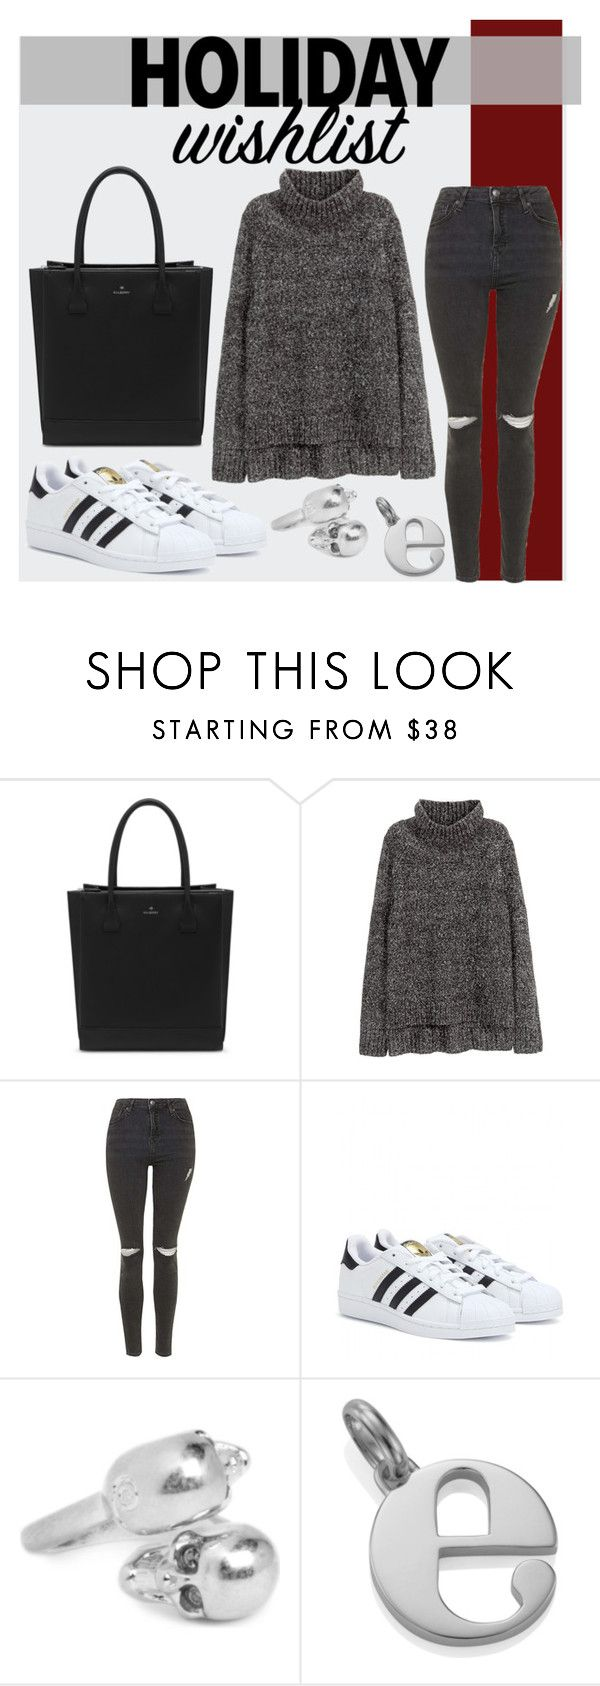 """""""Untitled #2481"""" by elenaday ❤ liked on Polyvore featuring Mulberry, H&M, Topshop, adidas, Alexander McQueen, Monica Vinader, contestentry and 2015wishlist"""